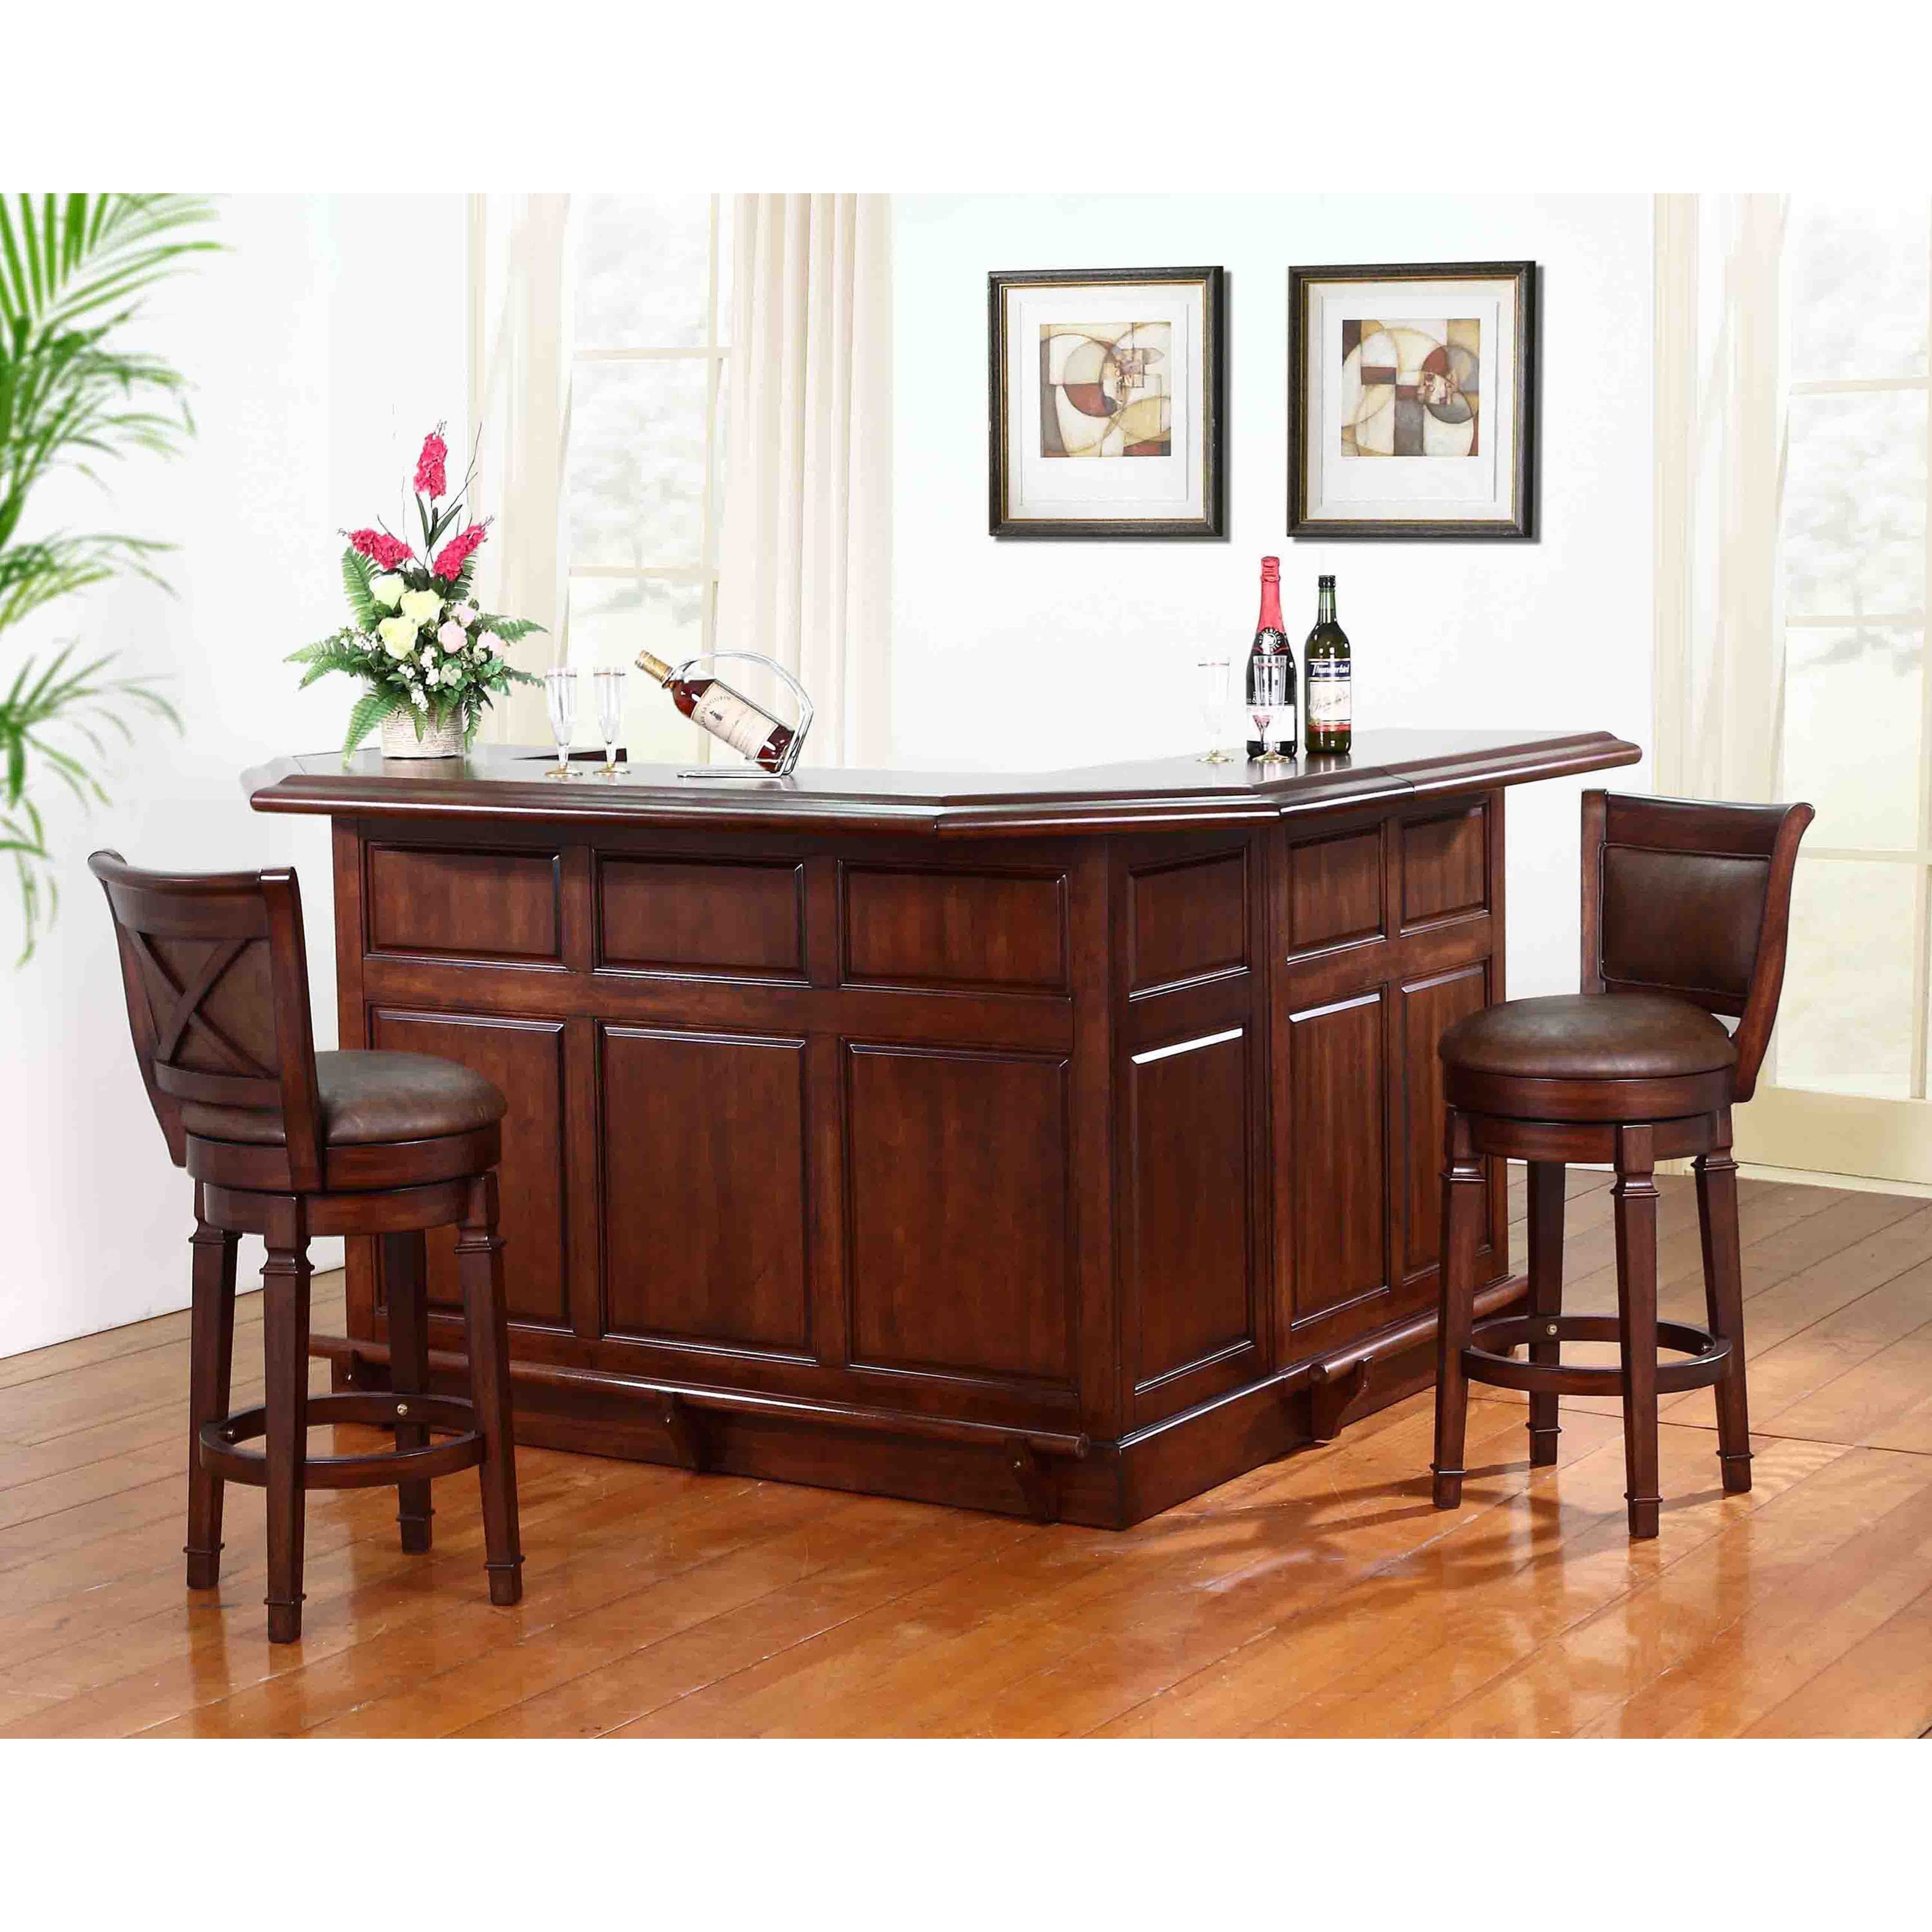 Belvedere-0411 Bar with Return by E.C.I. Furniture at Northeast Factory Direct